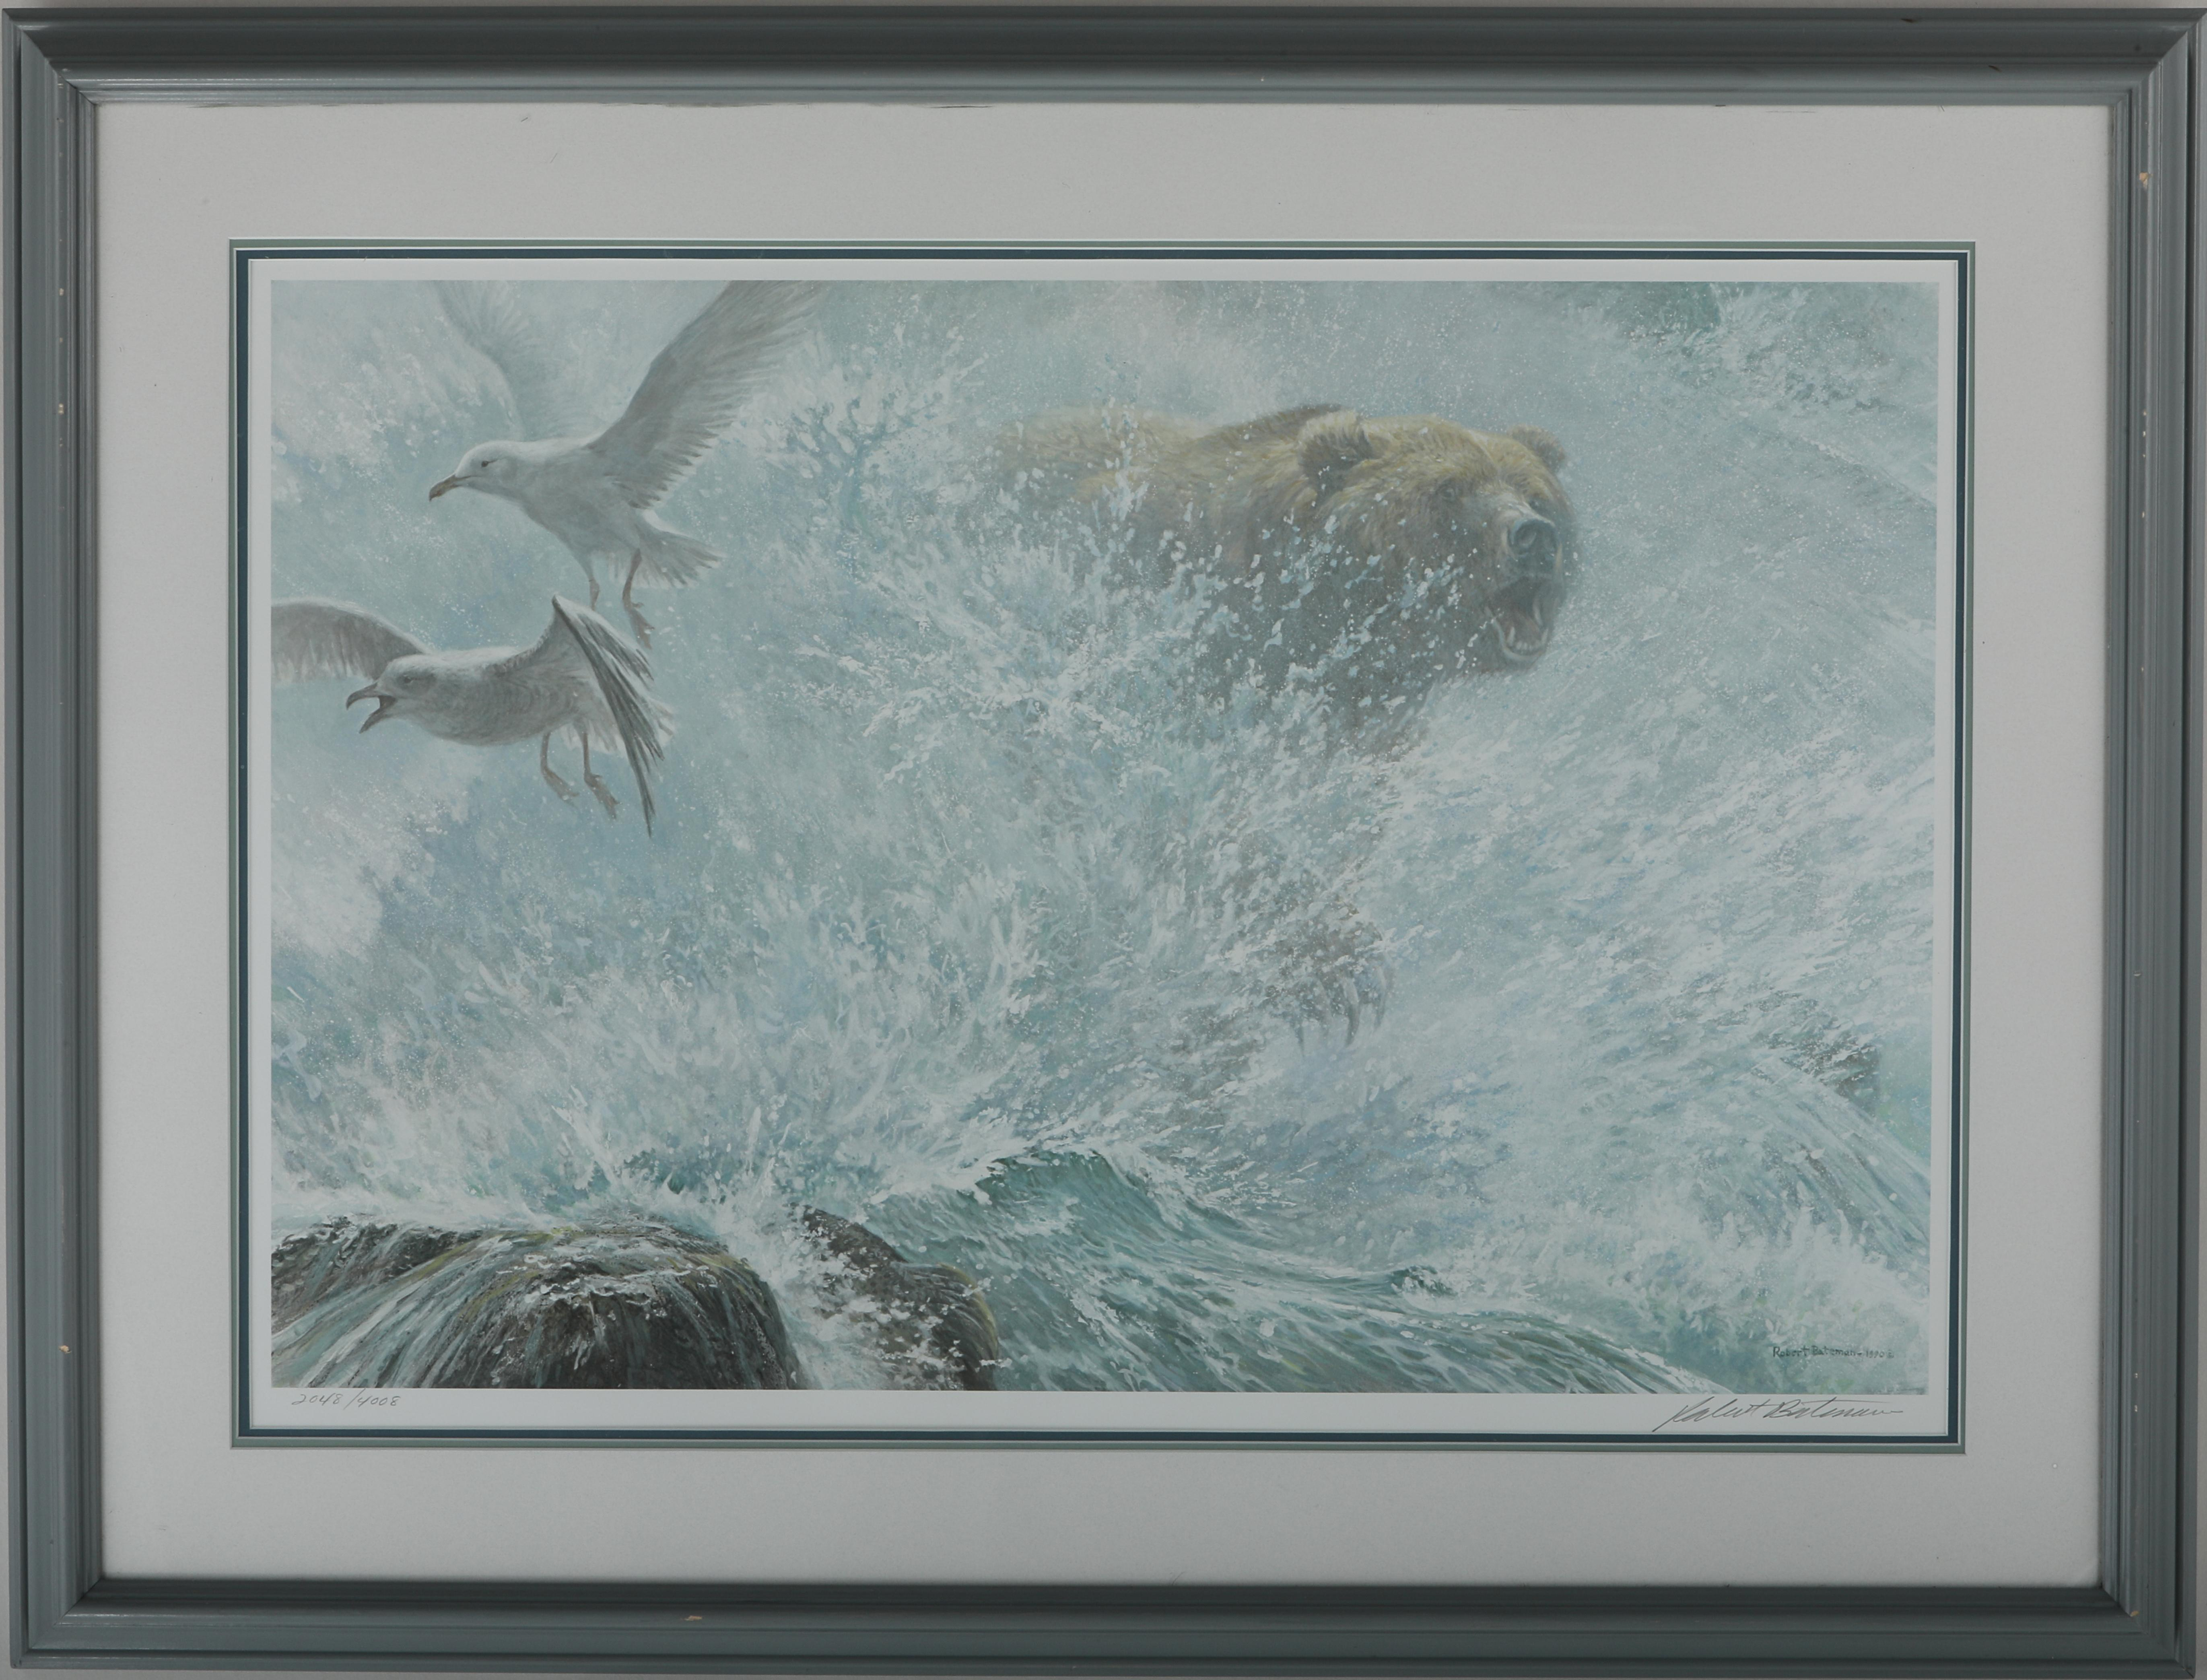 """Robert Bateman's """"Endangered Spaces - Grizzly"""" Limited Edition Print"""